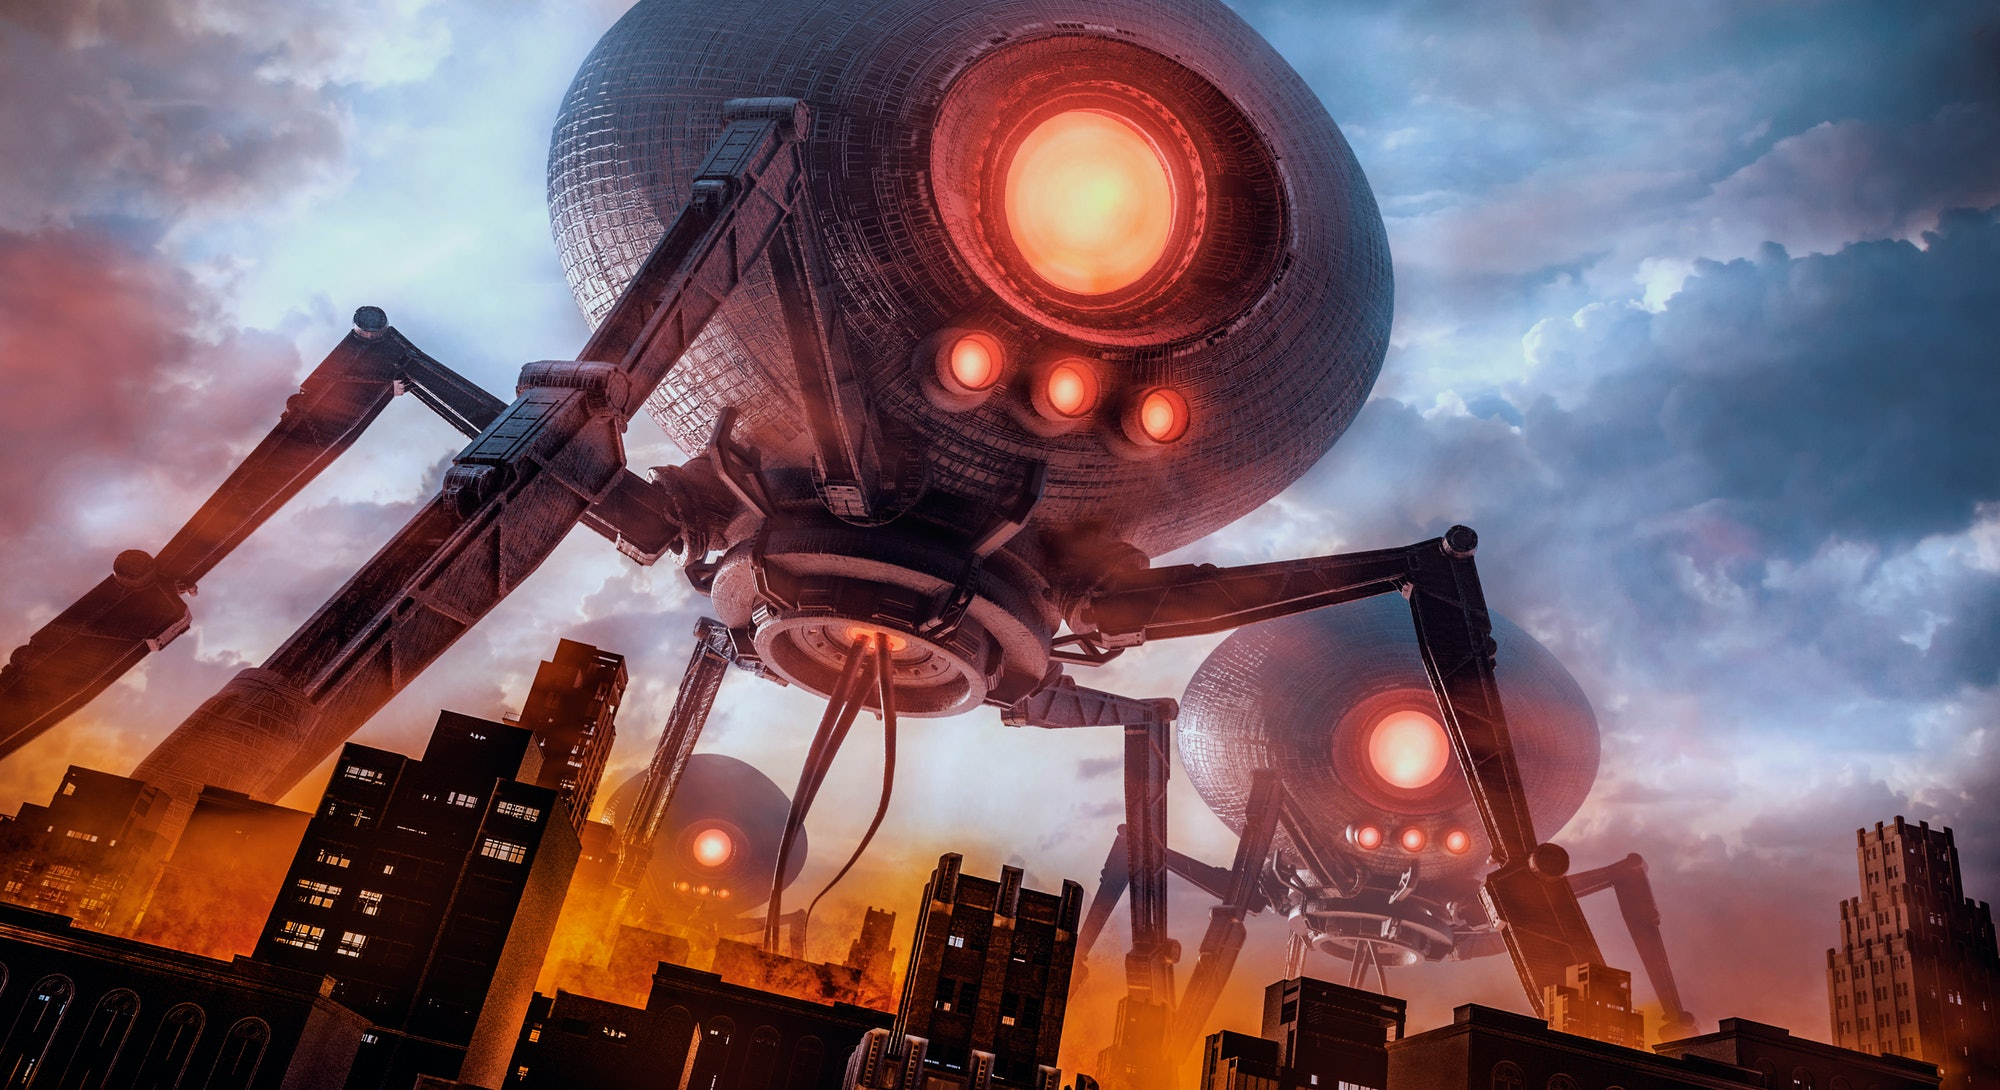 The eve of invasion / 3D illustration of retro science fiction scene with giant alien machines attacking city